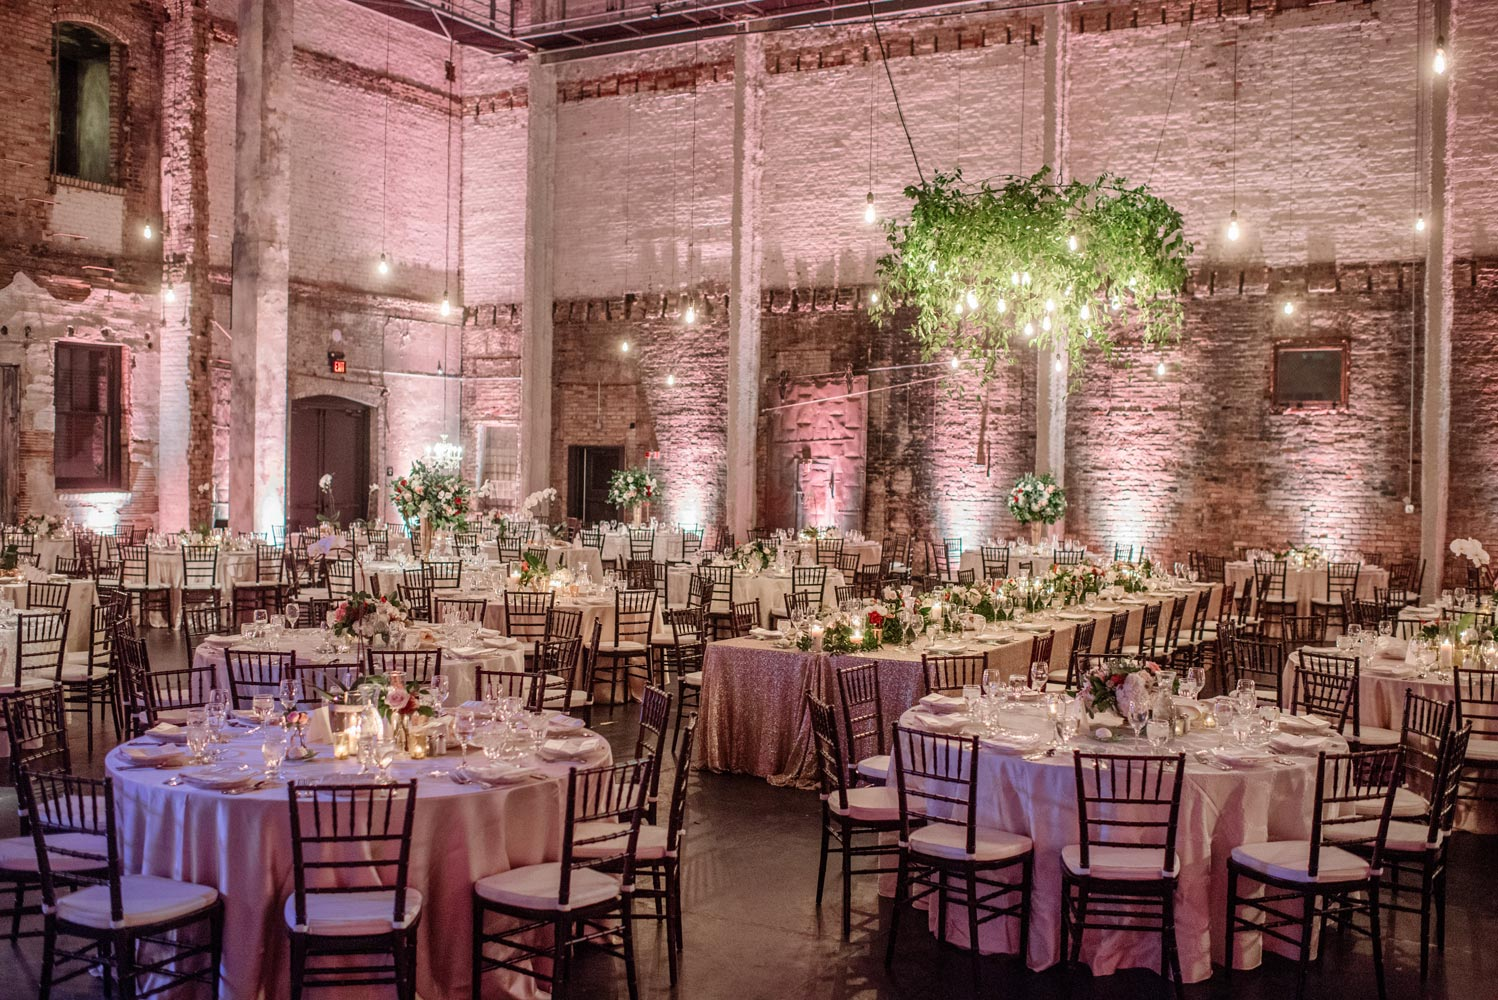 chiavari rental chairs veronica chair design by cate aria | historic industrial wedding & event venue minneapolis — weddings